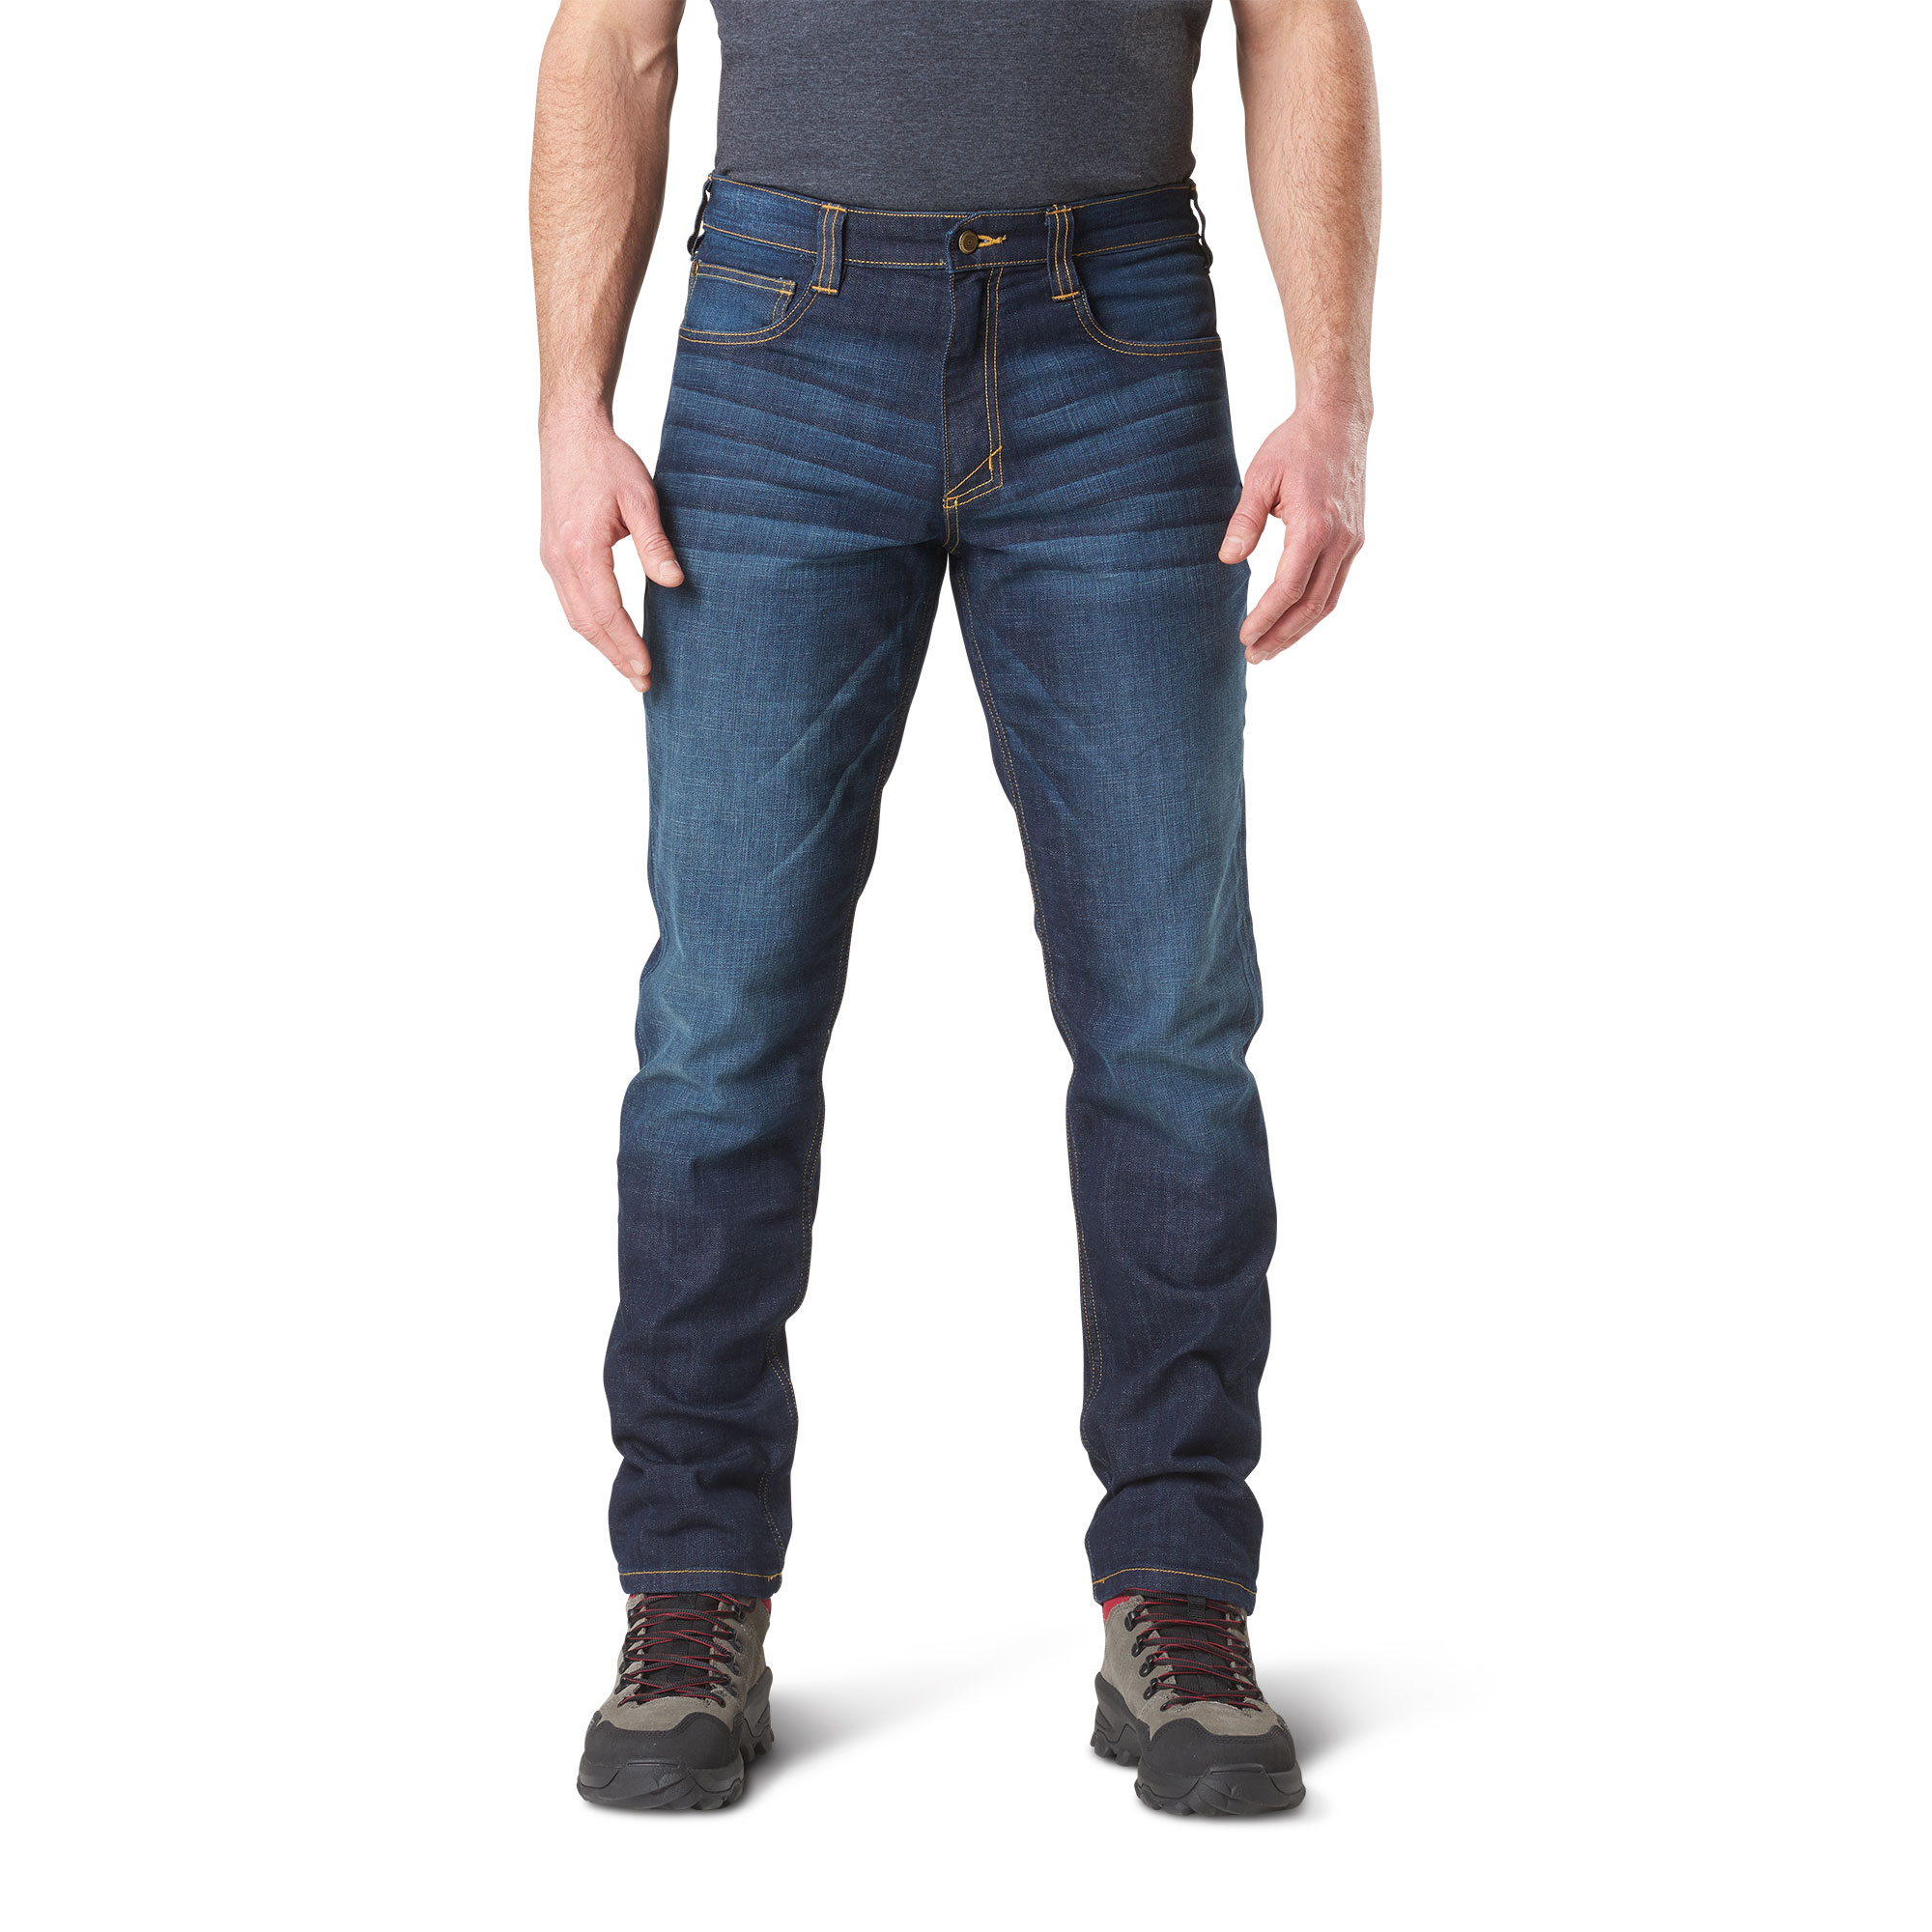 7c9194892a3 image of Defender-Flex Slim Jean with sku 888579132229